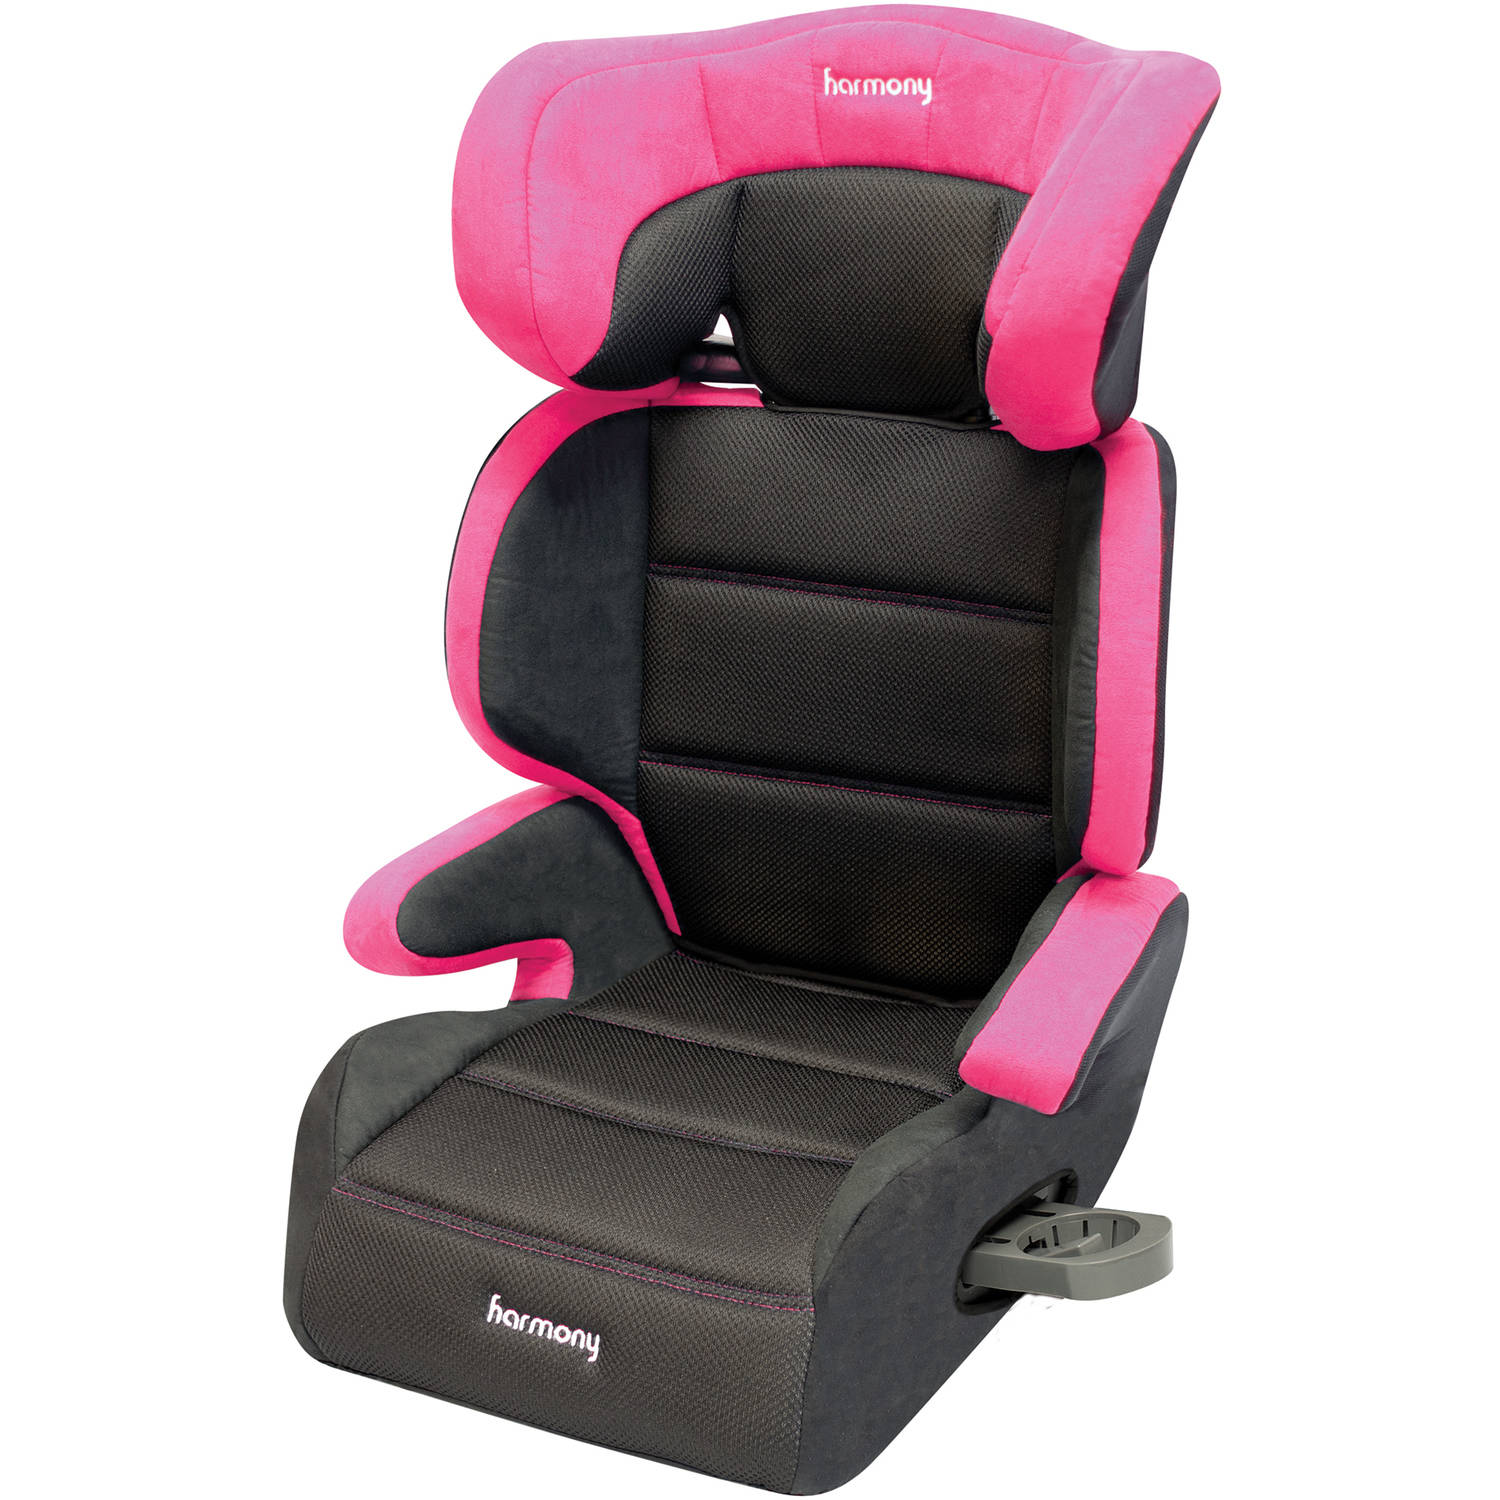 Harmony Dreamtime Deluxe Comfort Booster Car Seat, Pink